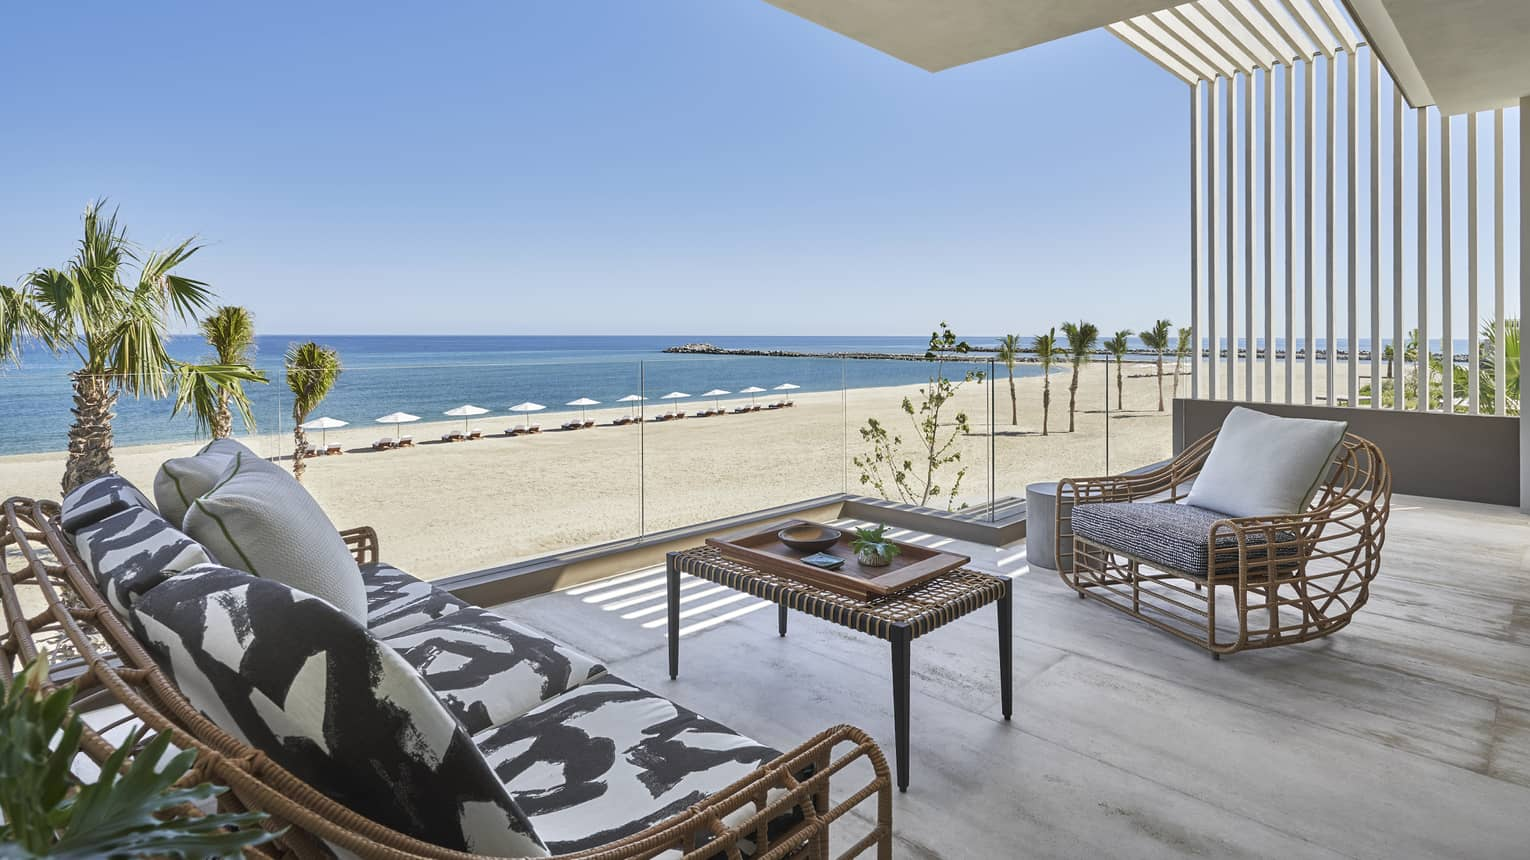 Outdoor terrace with modern wicker sofa and arm chair, glass railing, beach and ocean view